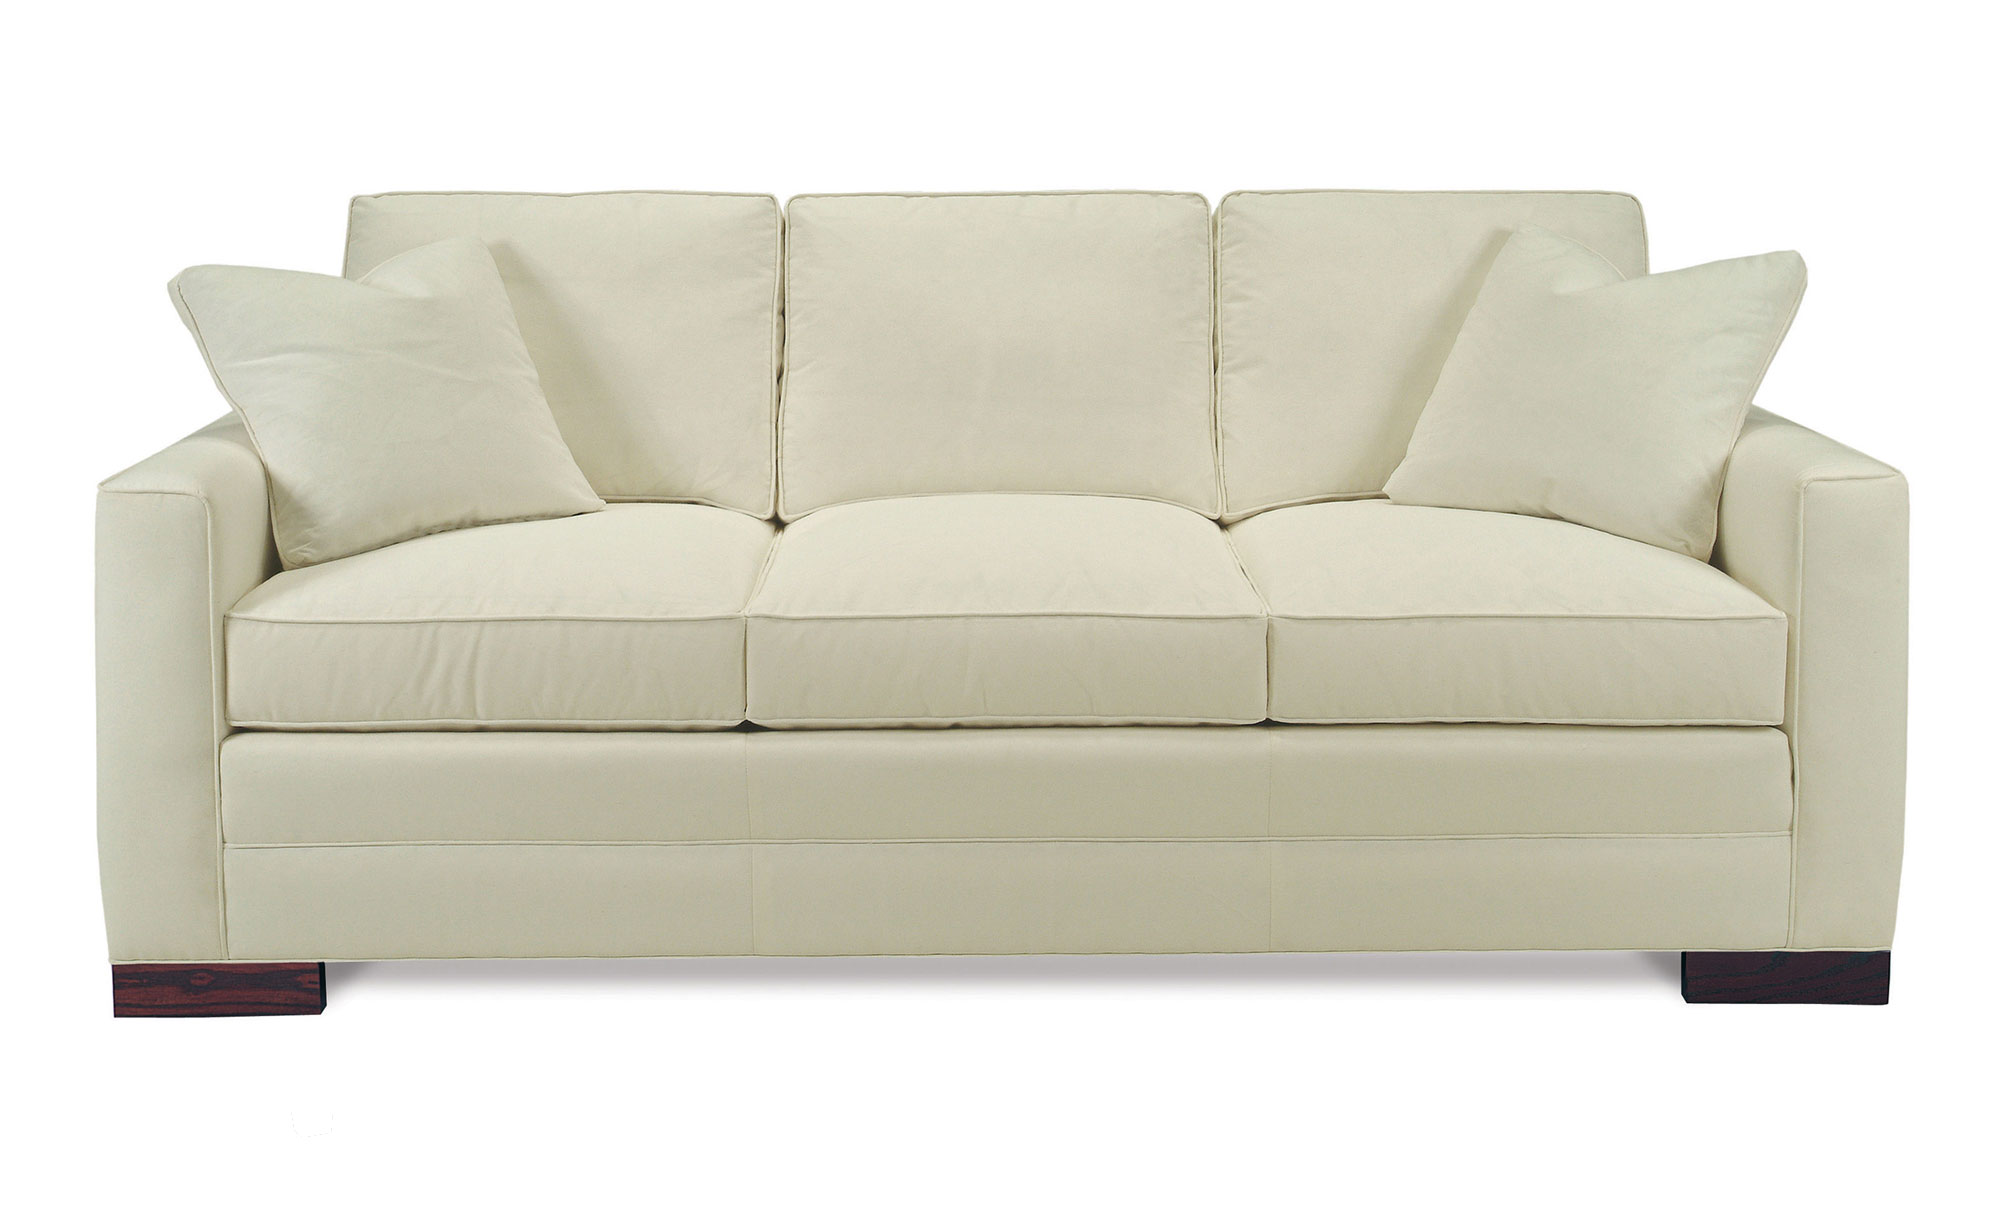 Vanguard sofa quality loop sofa for Affordable furniture 610